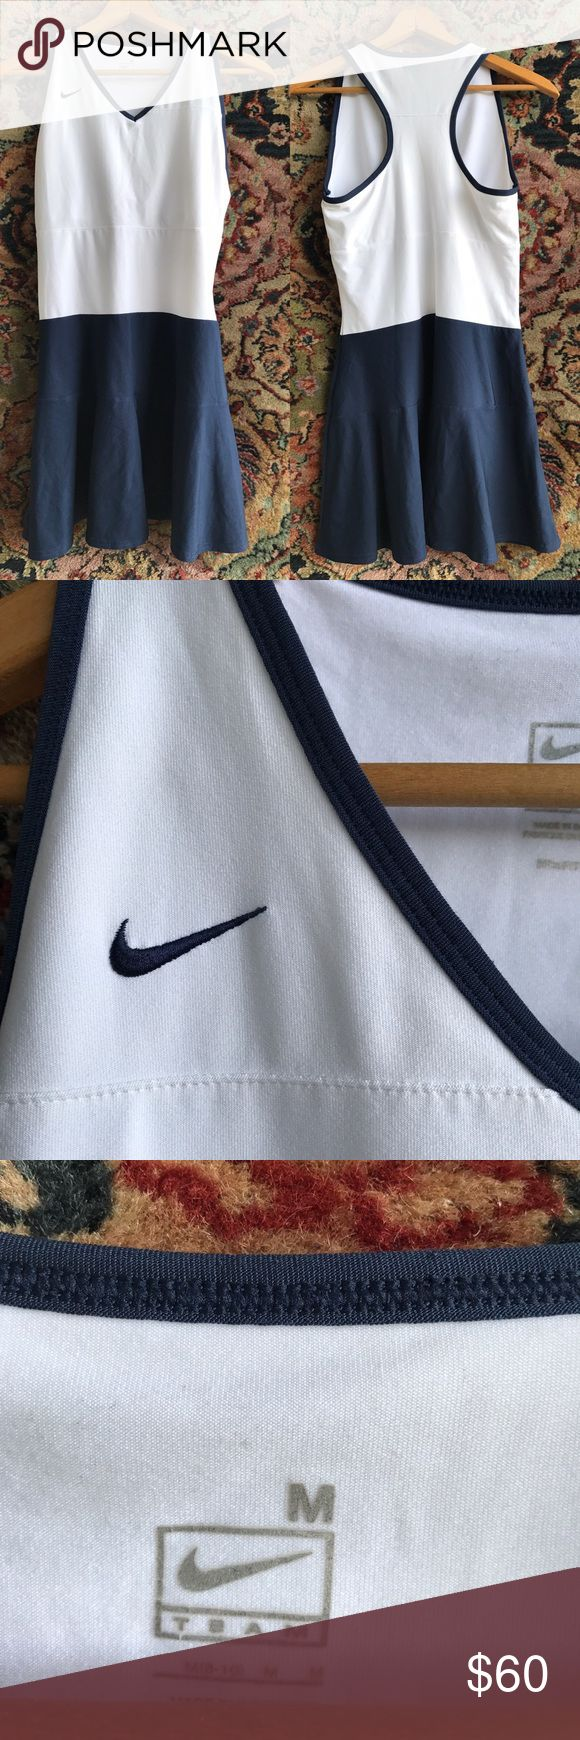 """Nike Racer Back Tennis Dress Crisp and slinky. All the style and performance you expect from Nike. In excellent condition. 15.5"""" underarm to underarm, 14.5"""" waist and 32"""" L Nike Dresses Mini"""